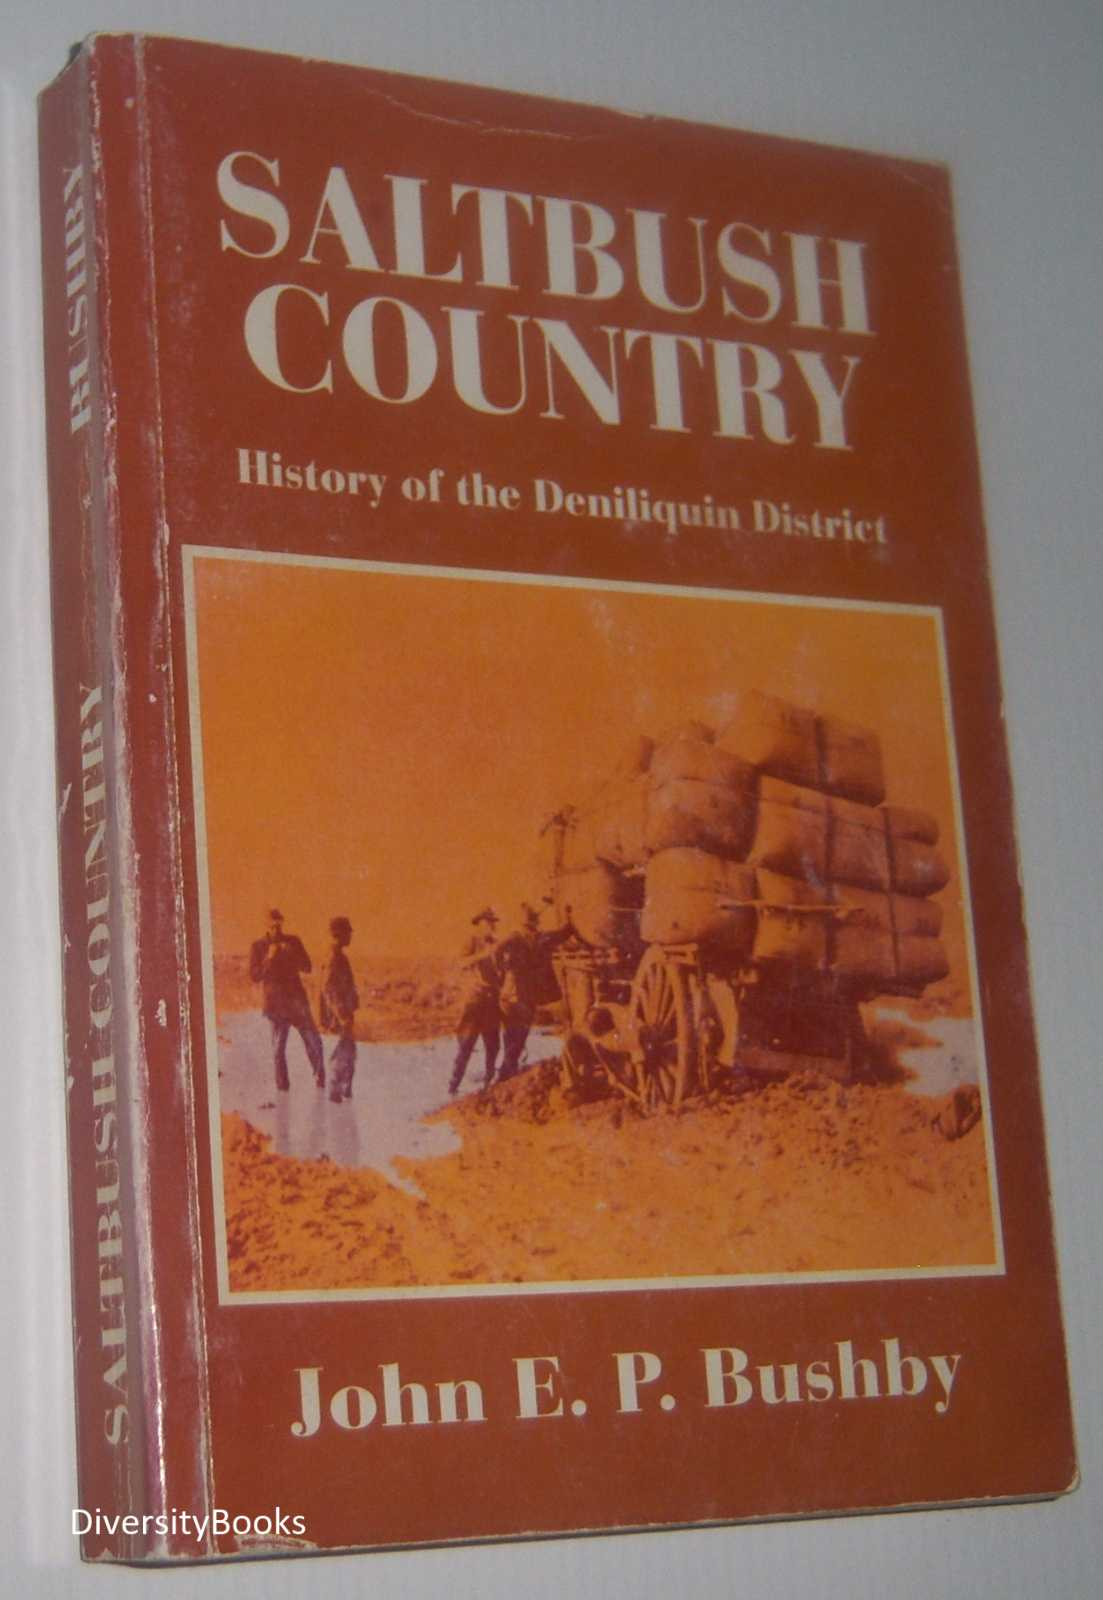 Image for SALTBUSH COUNTRY : History of the Deniliquin District